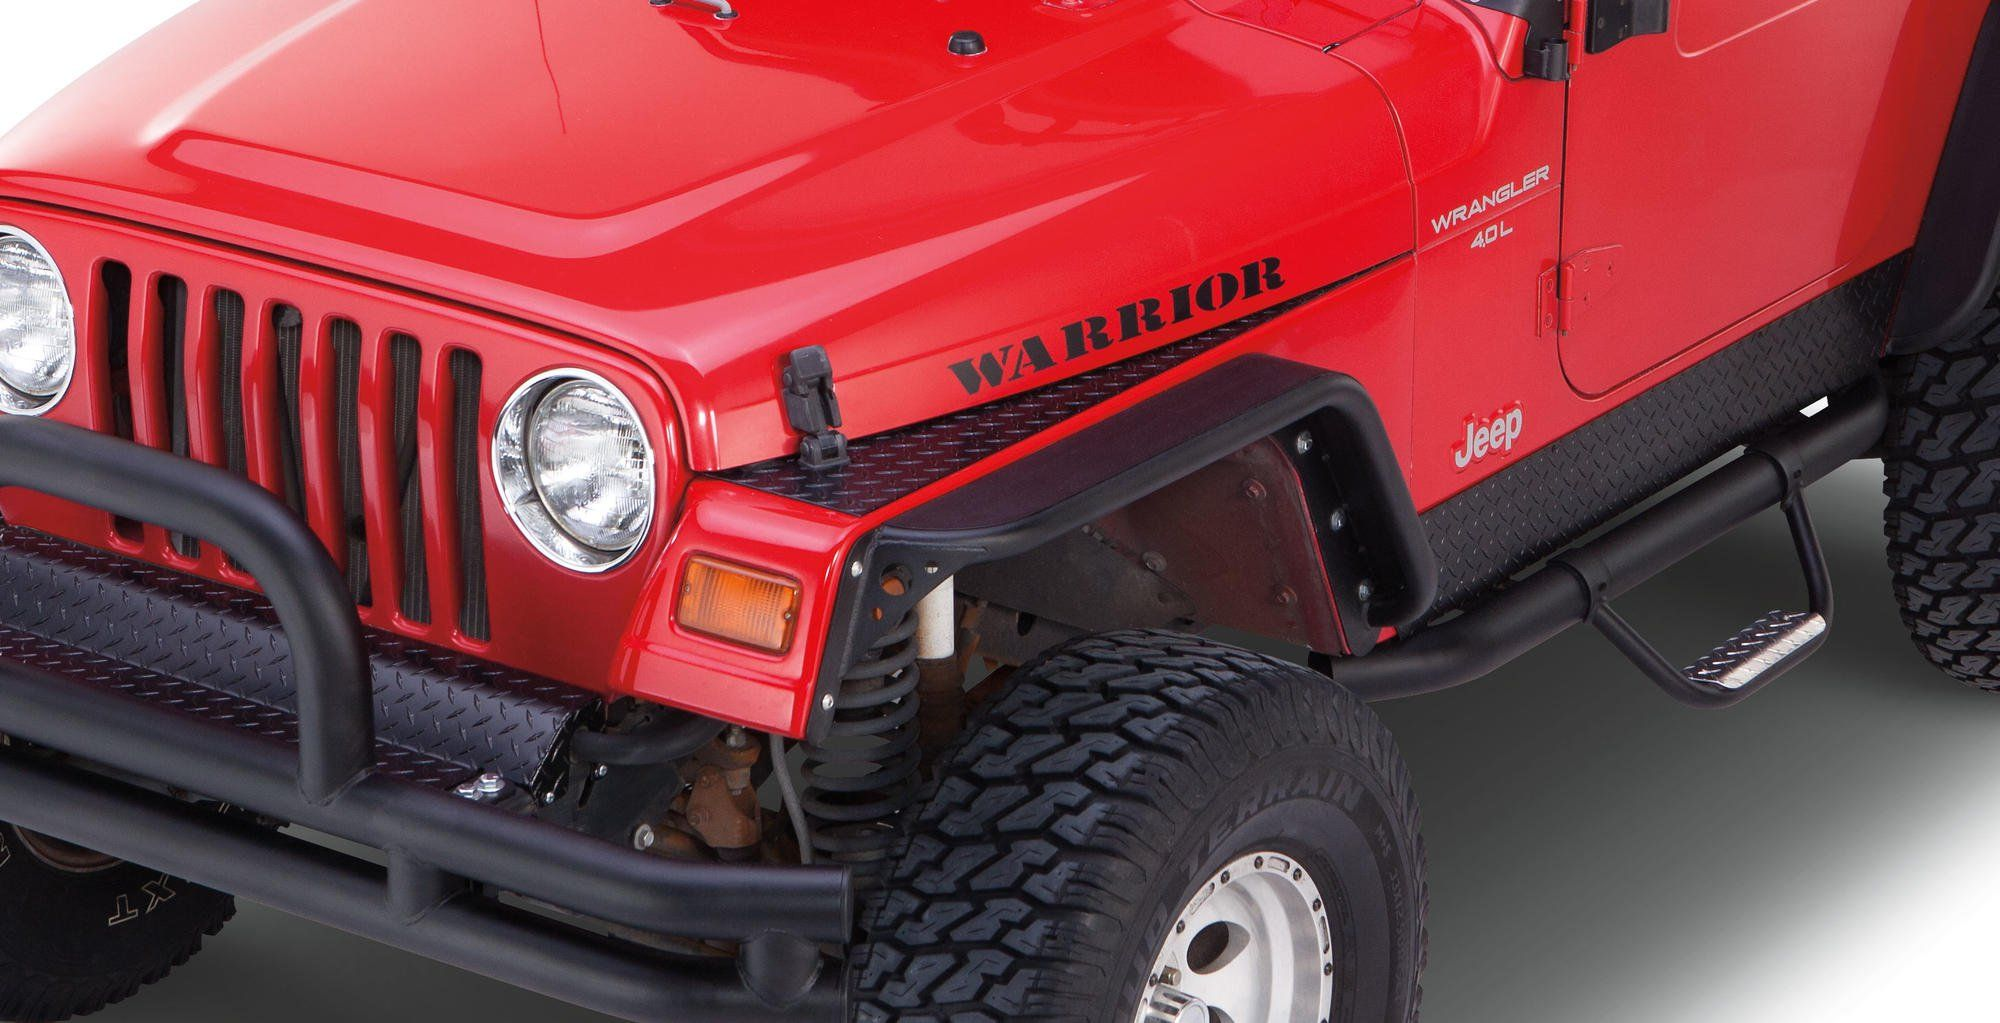 Front Fender Covers Like The Front Fender Rock Protectors These